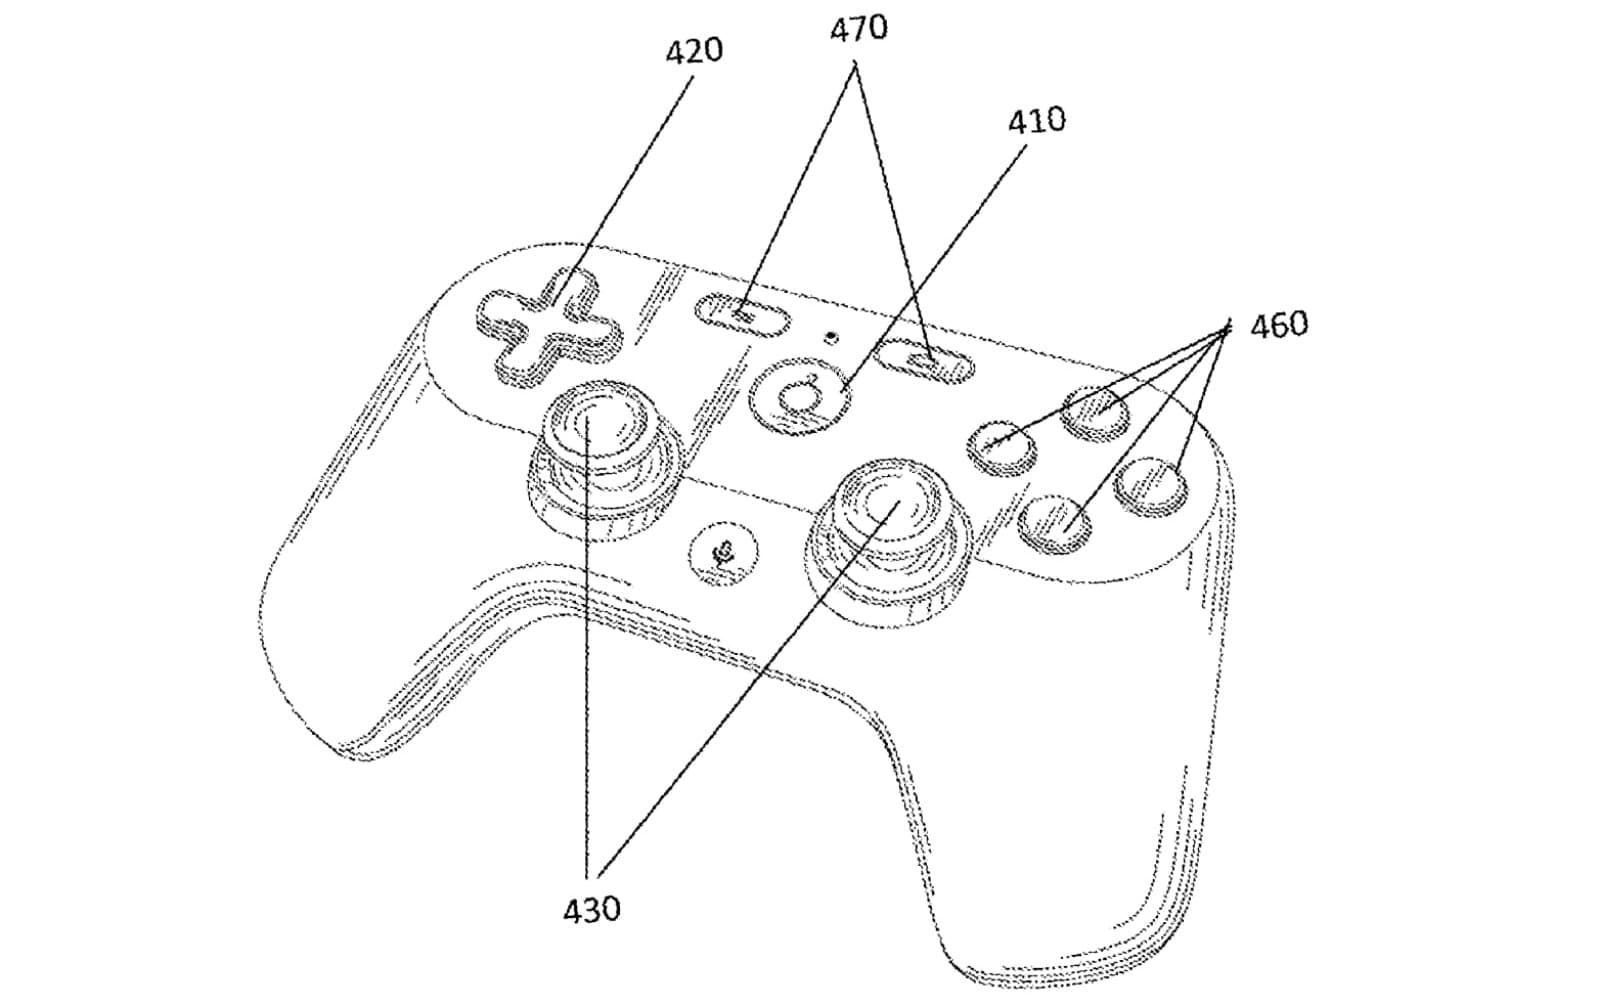 S Upcoming Gaming Controller Makes An Uncertain